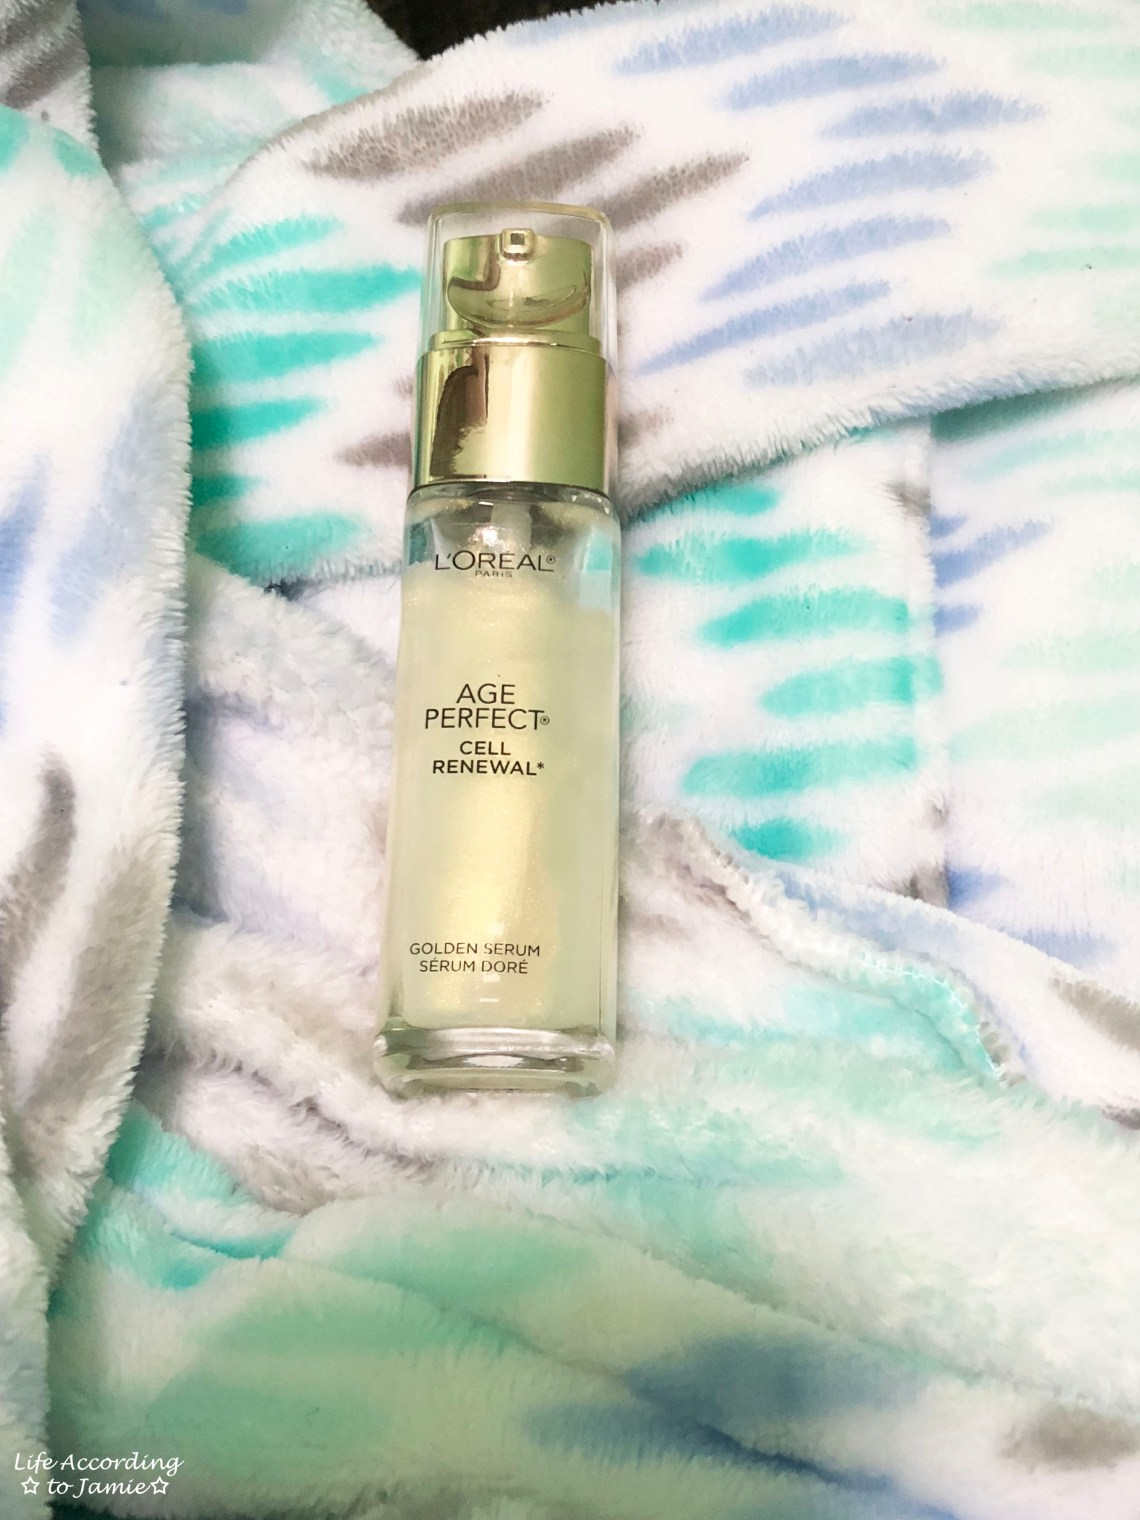 Age Perfect Cell Renewal Golden Serum by L'Oreal #22